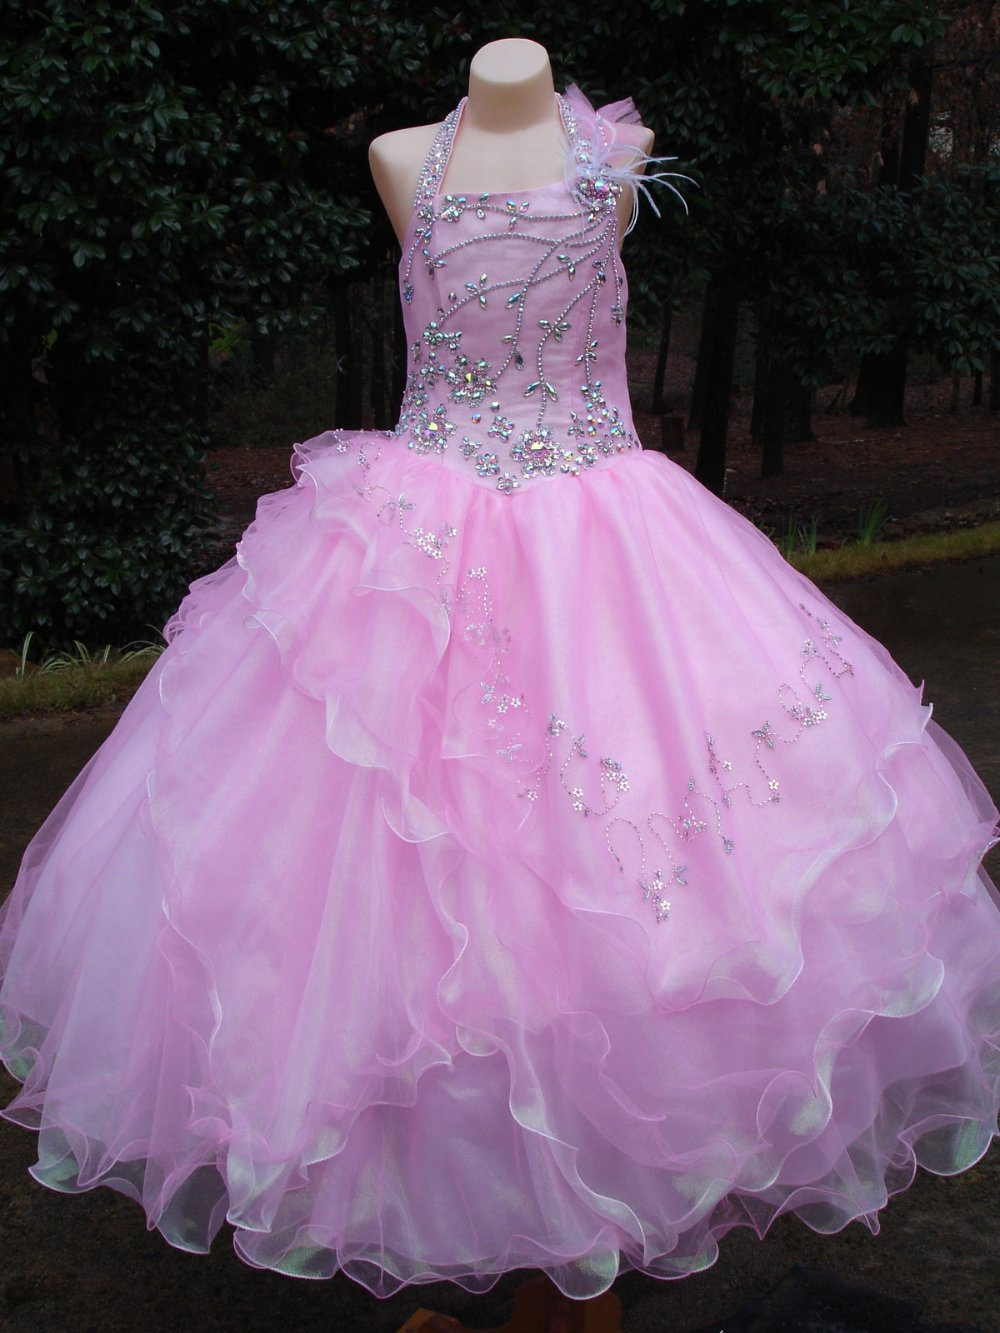 2013 Unique Fashion Pink Layered Skirt Sugar Pageant Dress -4625